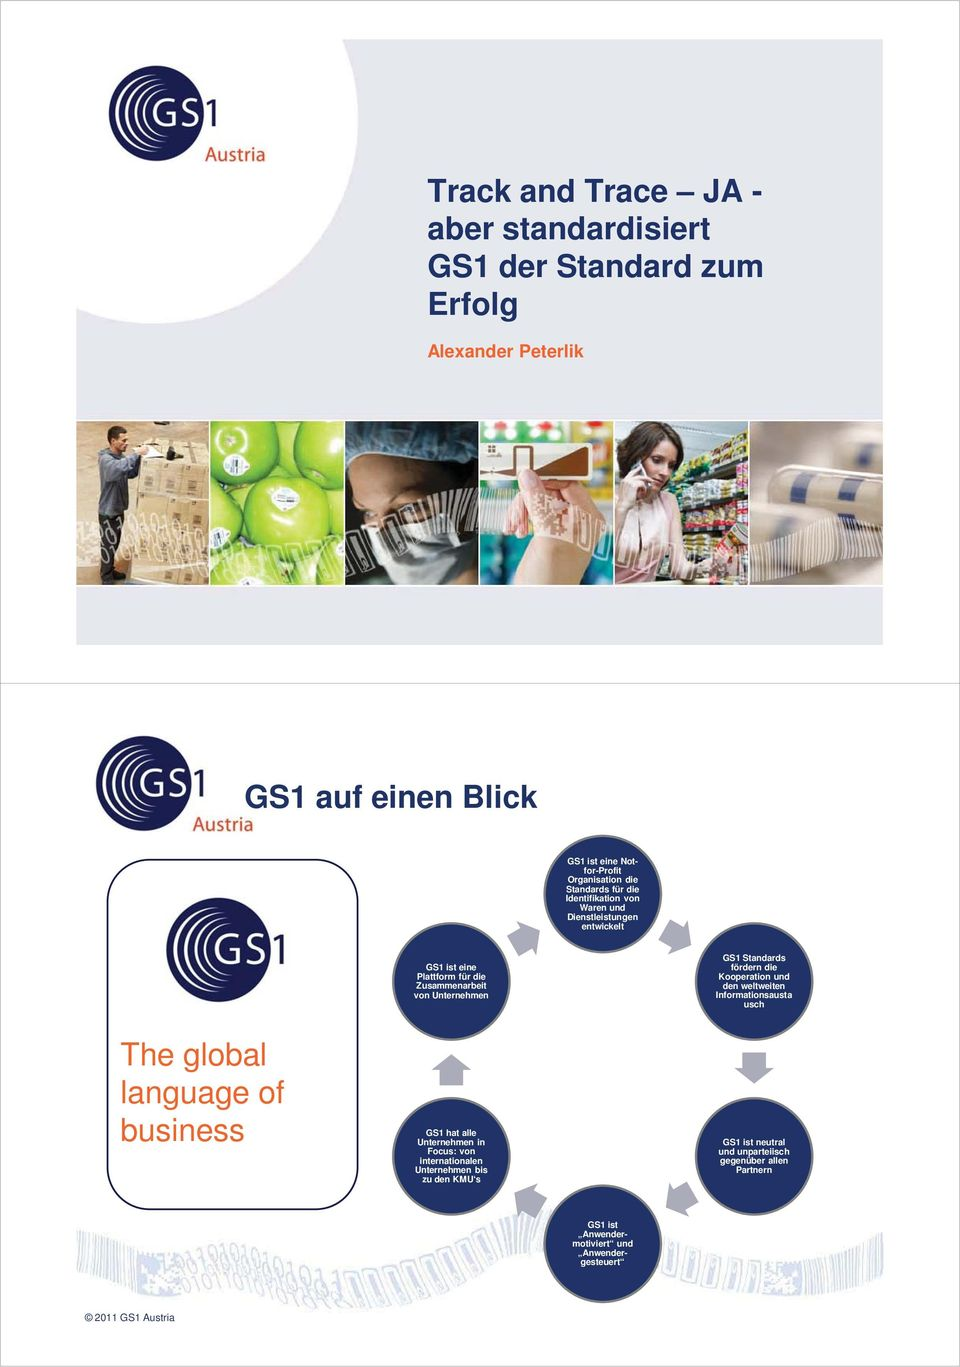 Standards fördern die Kooperation und den weltweiten Informationsausta usch The global language of business GS1 hat alle Unternehmen in Focus: von